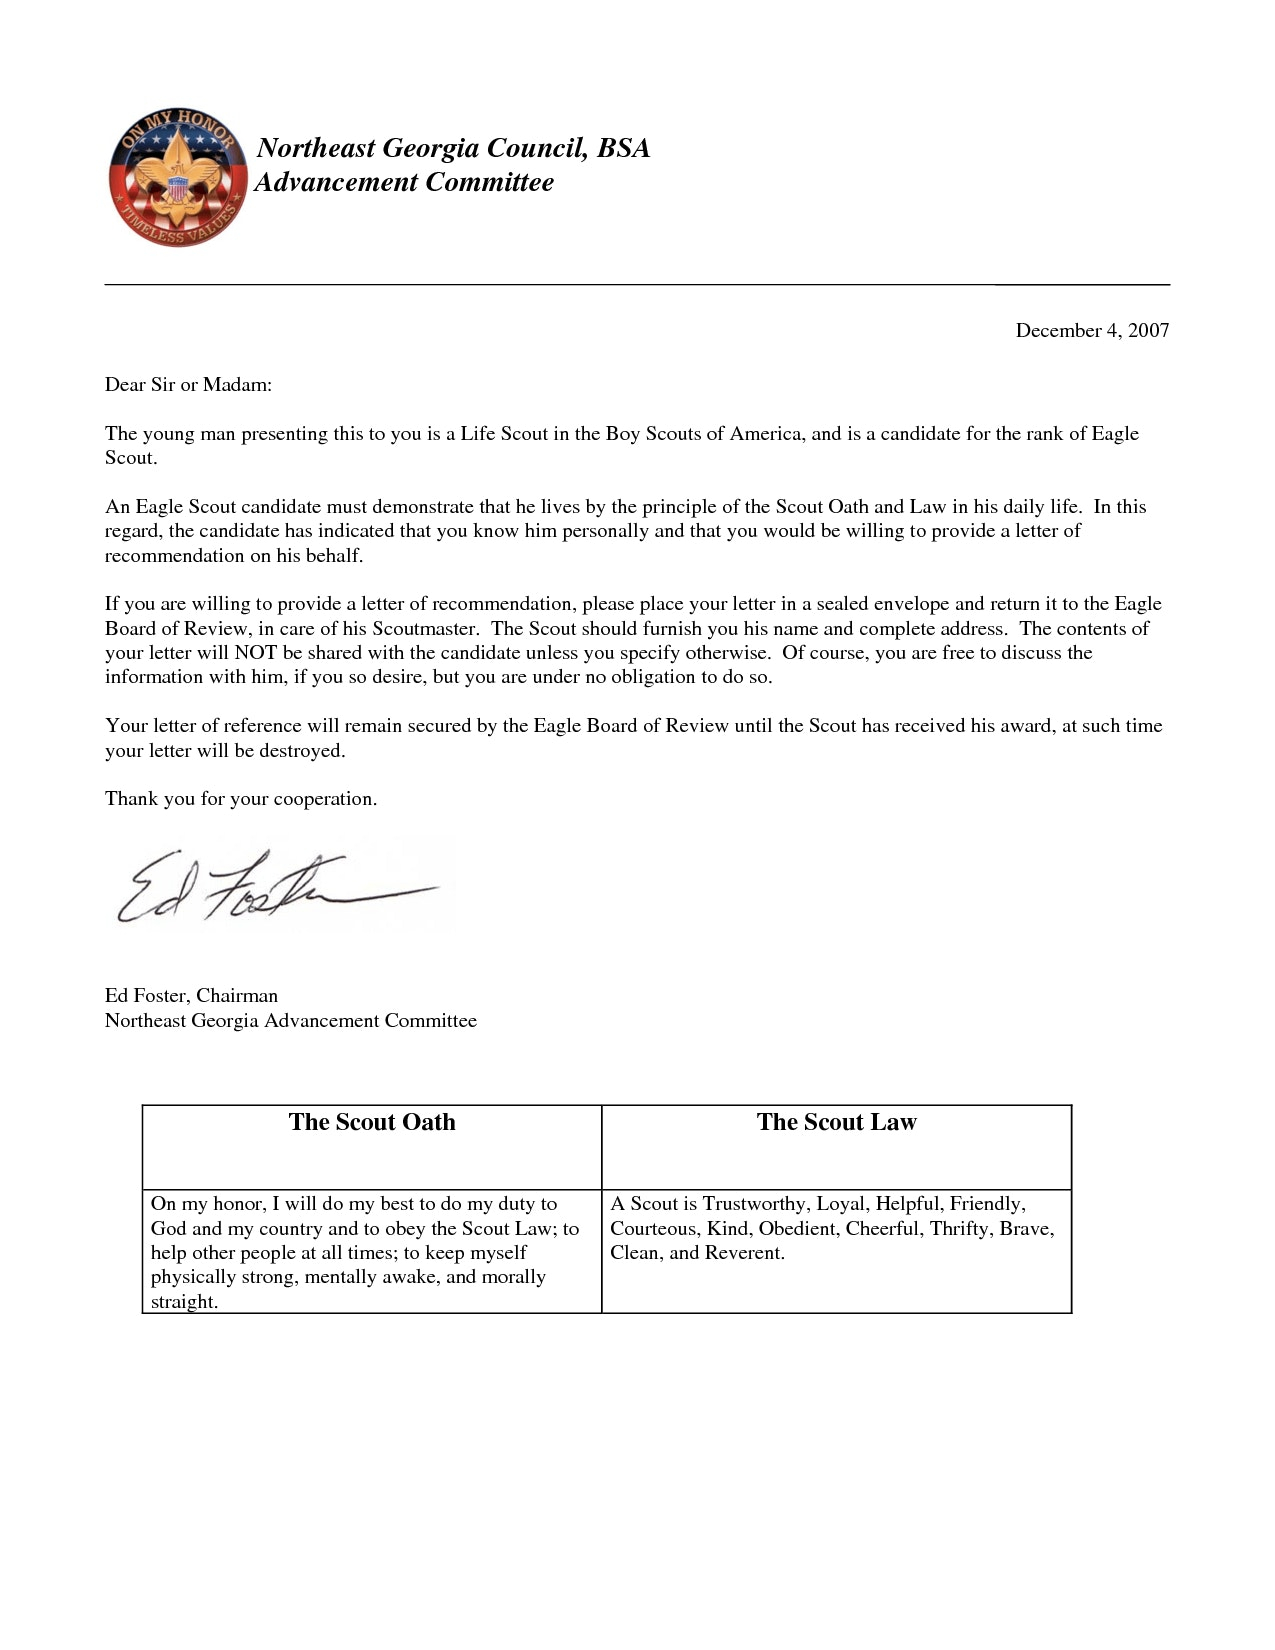 Eagle Scout Recommendation Letter Template - Eagle Scout Reference Letter Sample Image Collections Letter